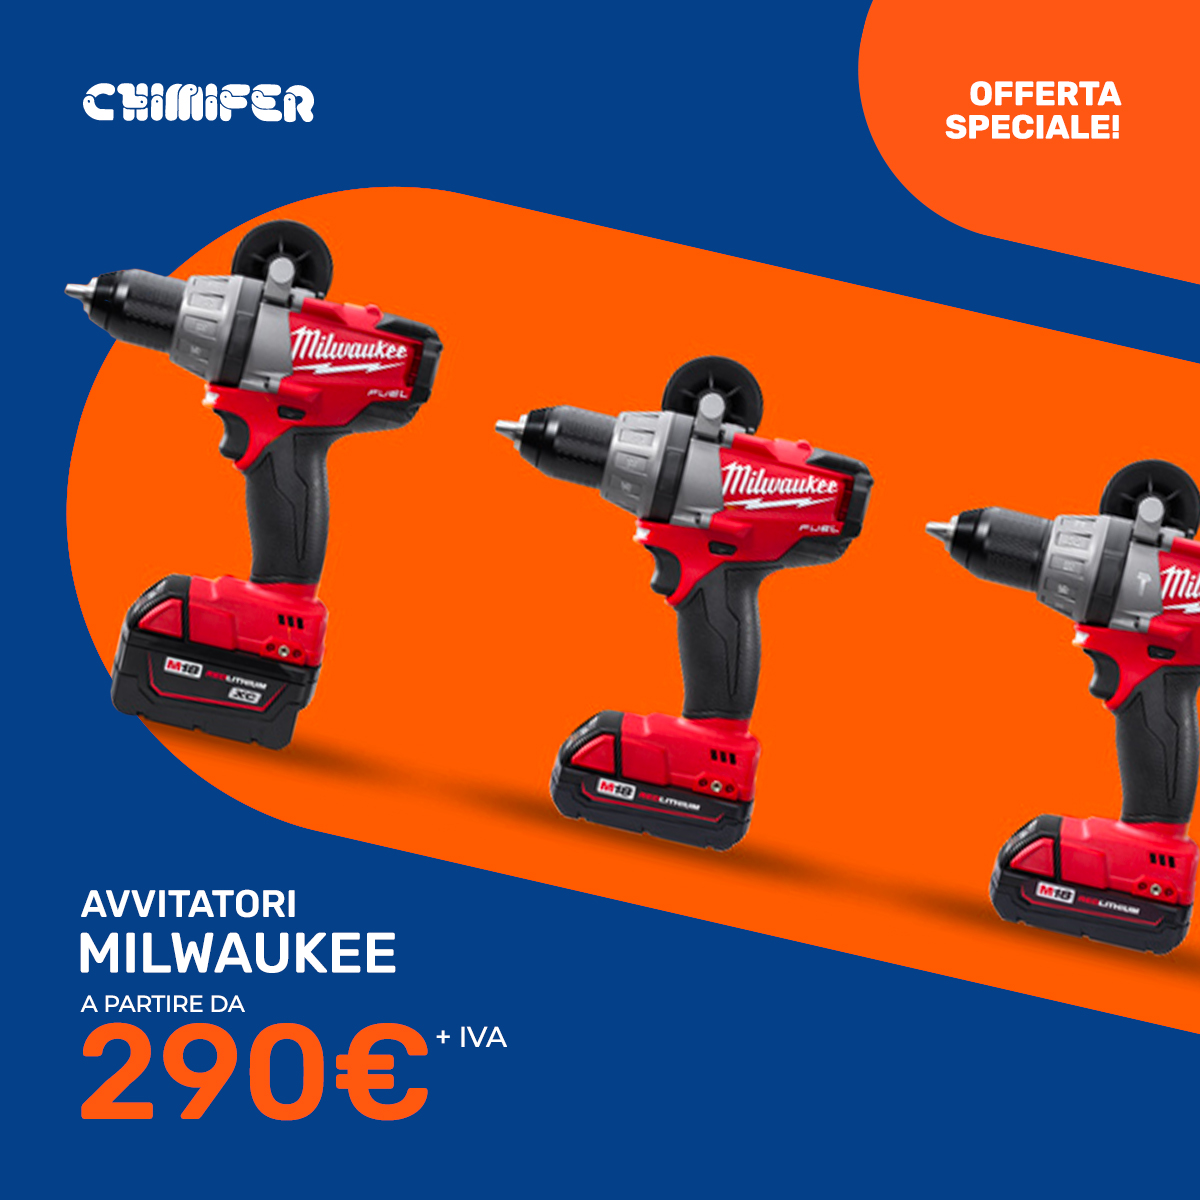 avvitatori-Milwaukee-offerta-chimifer